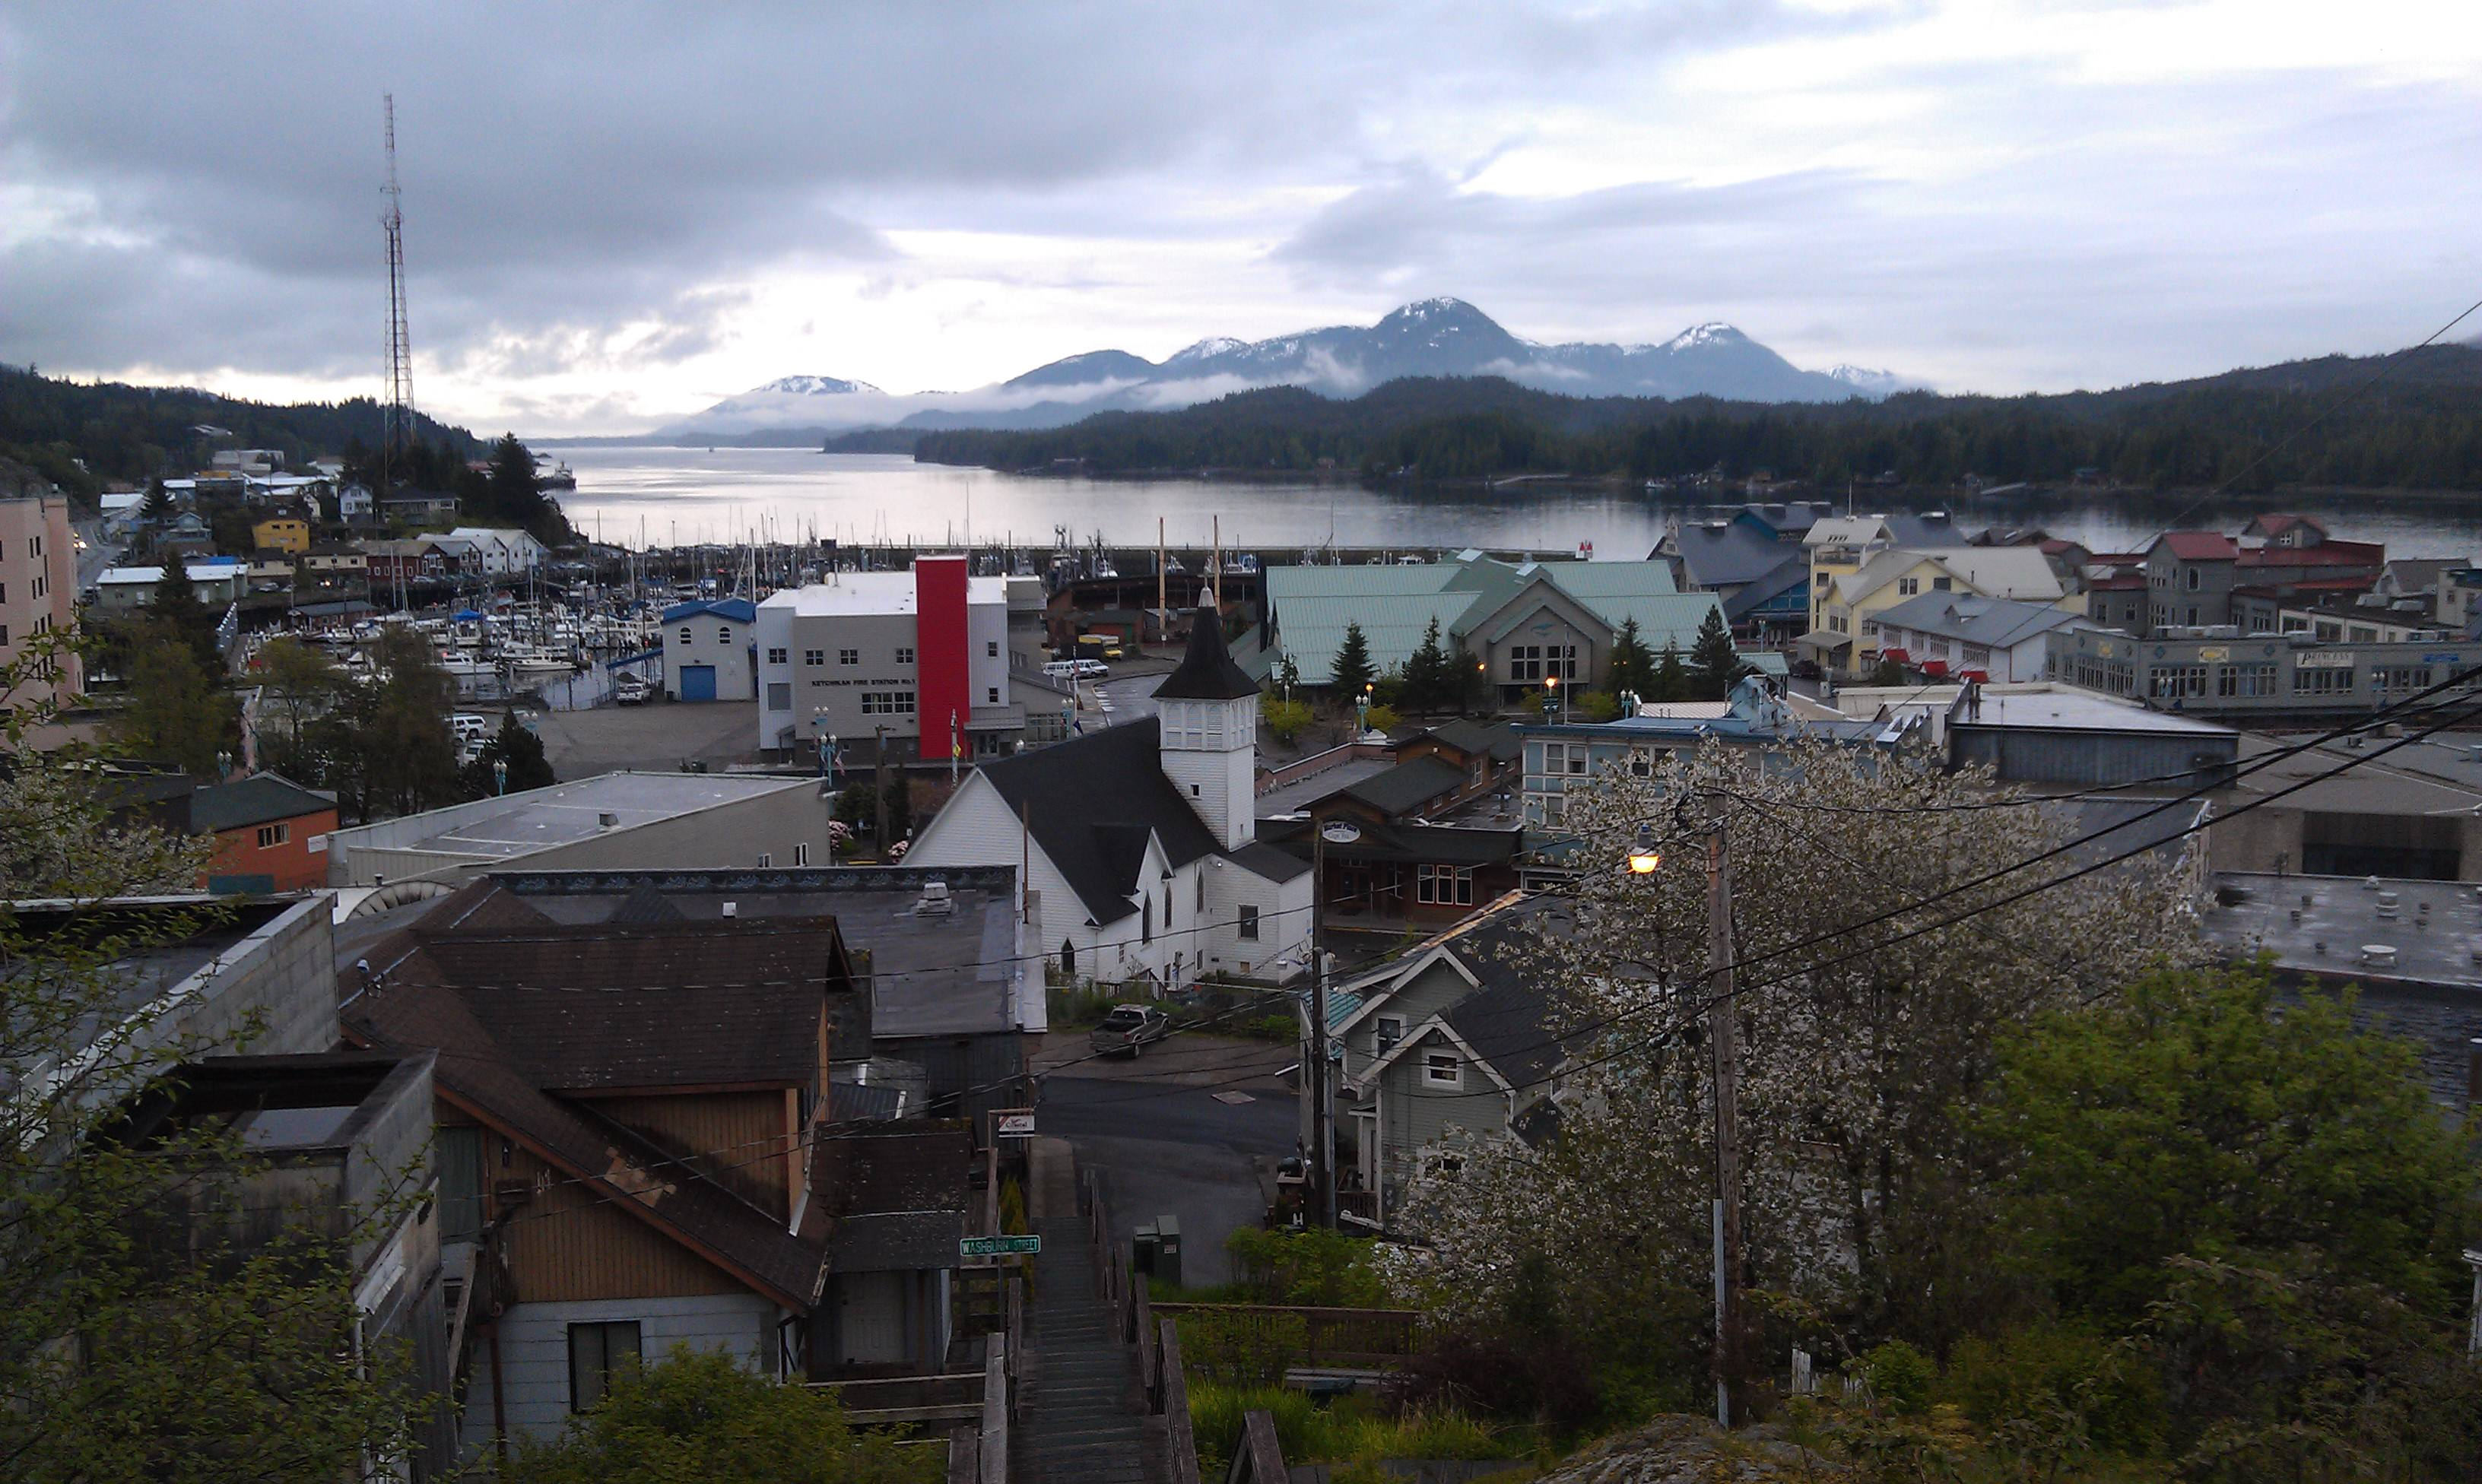 Morning view of Ketchikan, Alaska